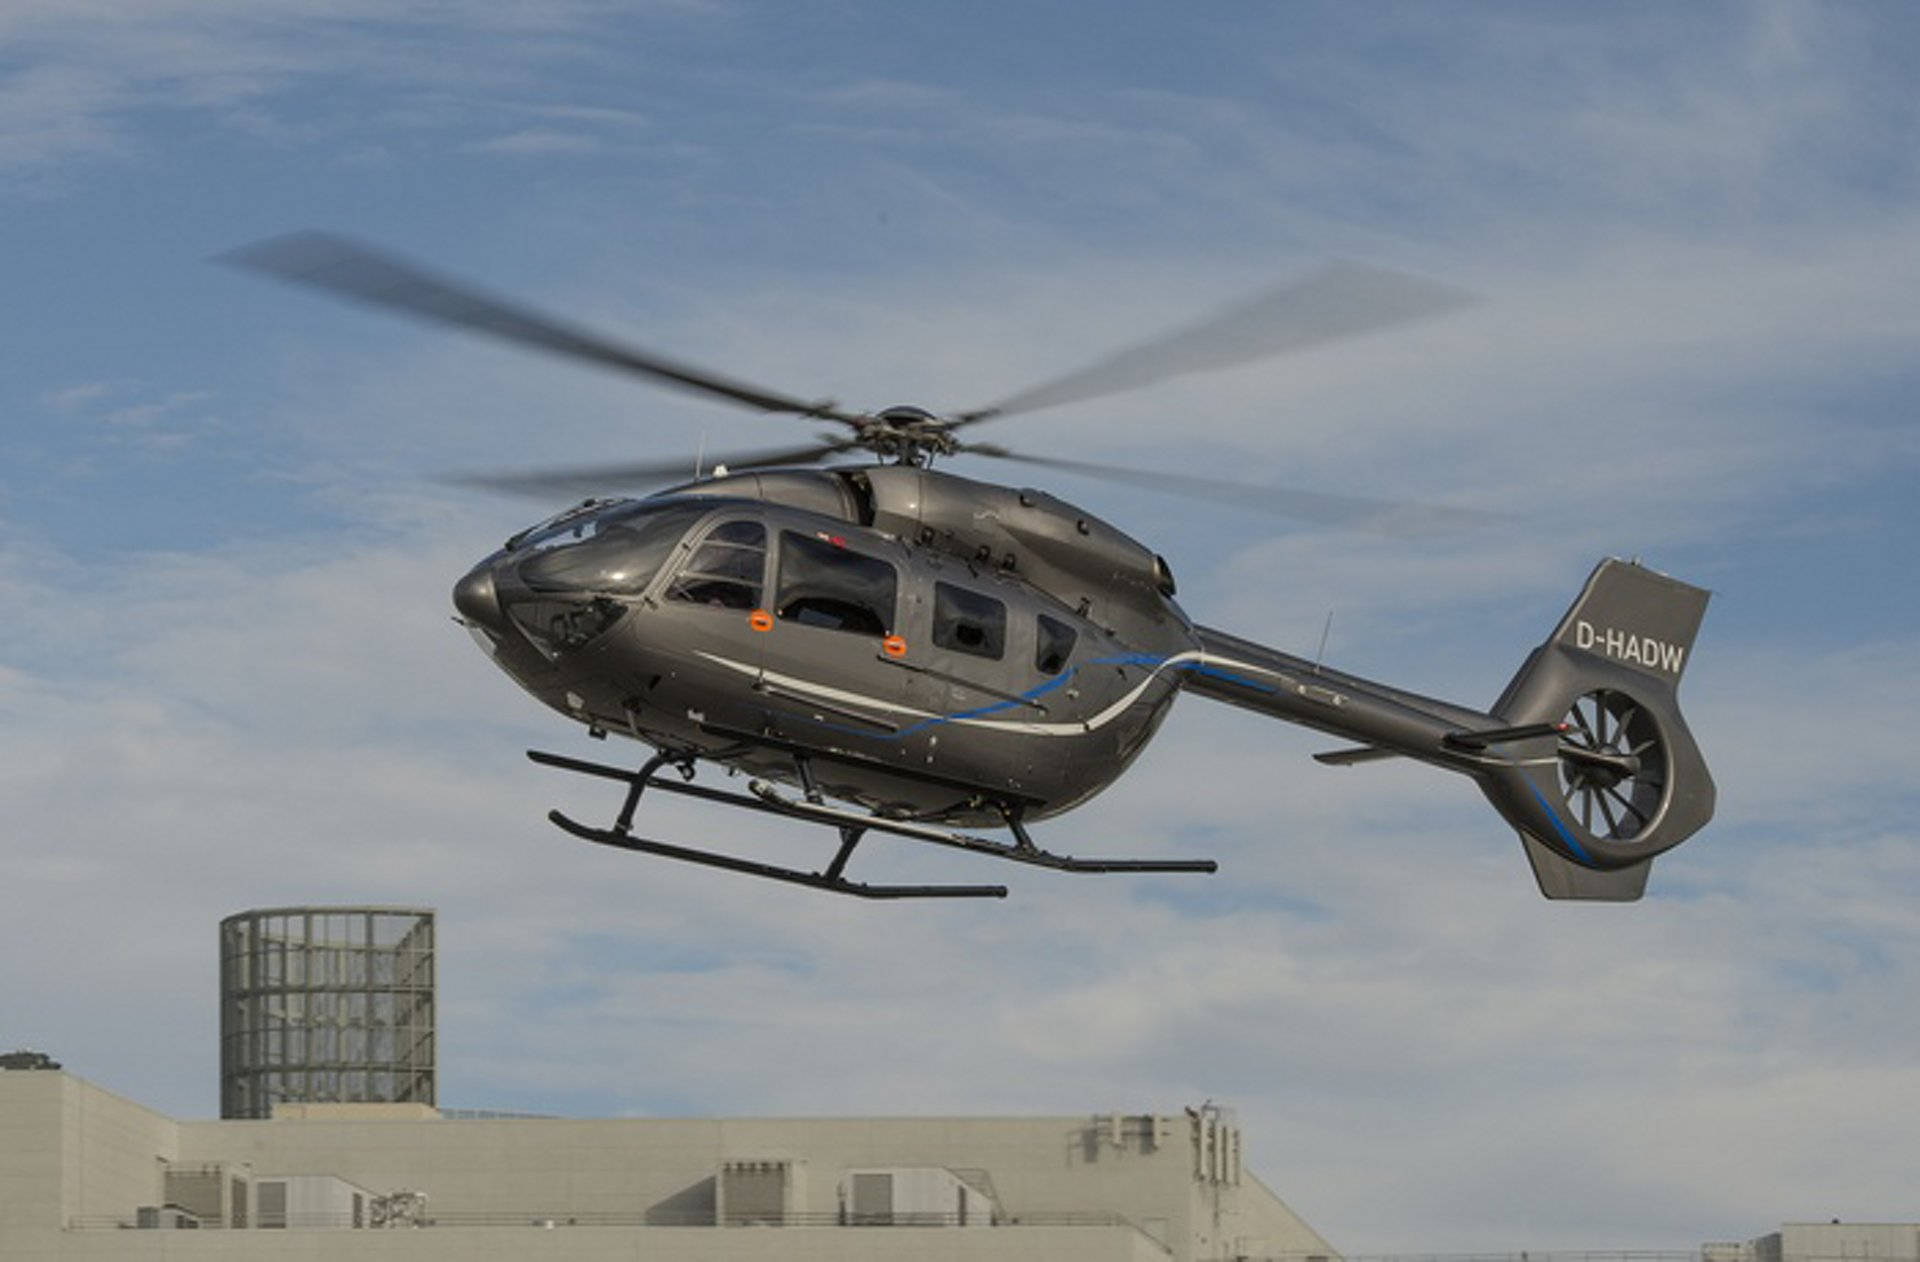 Airbus Helicopters' H145 makes its Brazilian debut in month-long demonstration tour